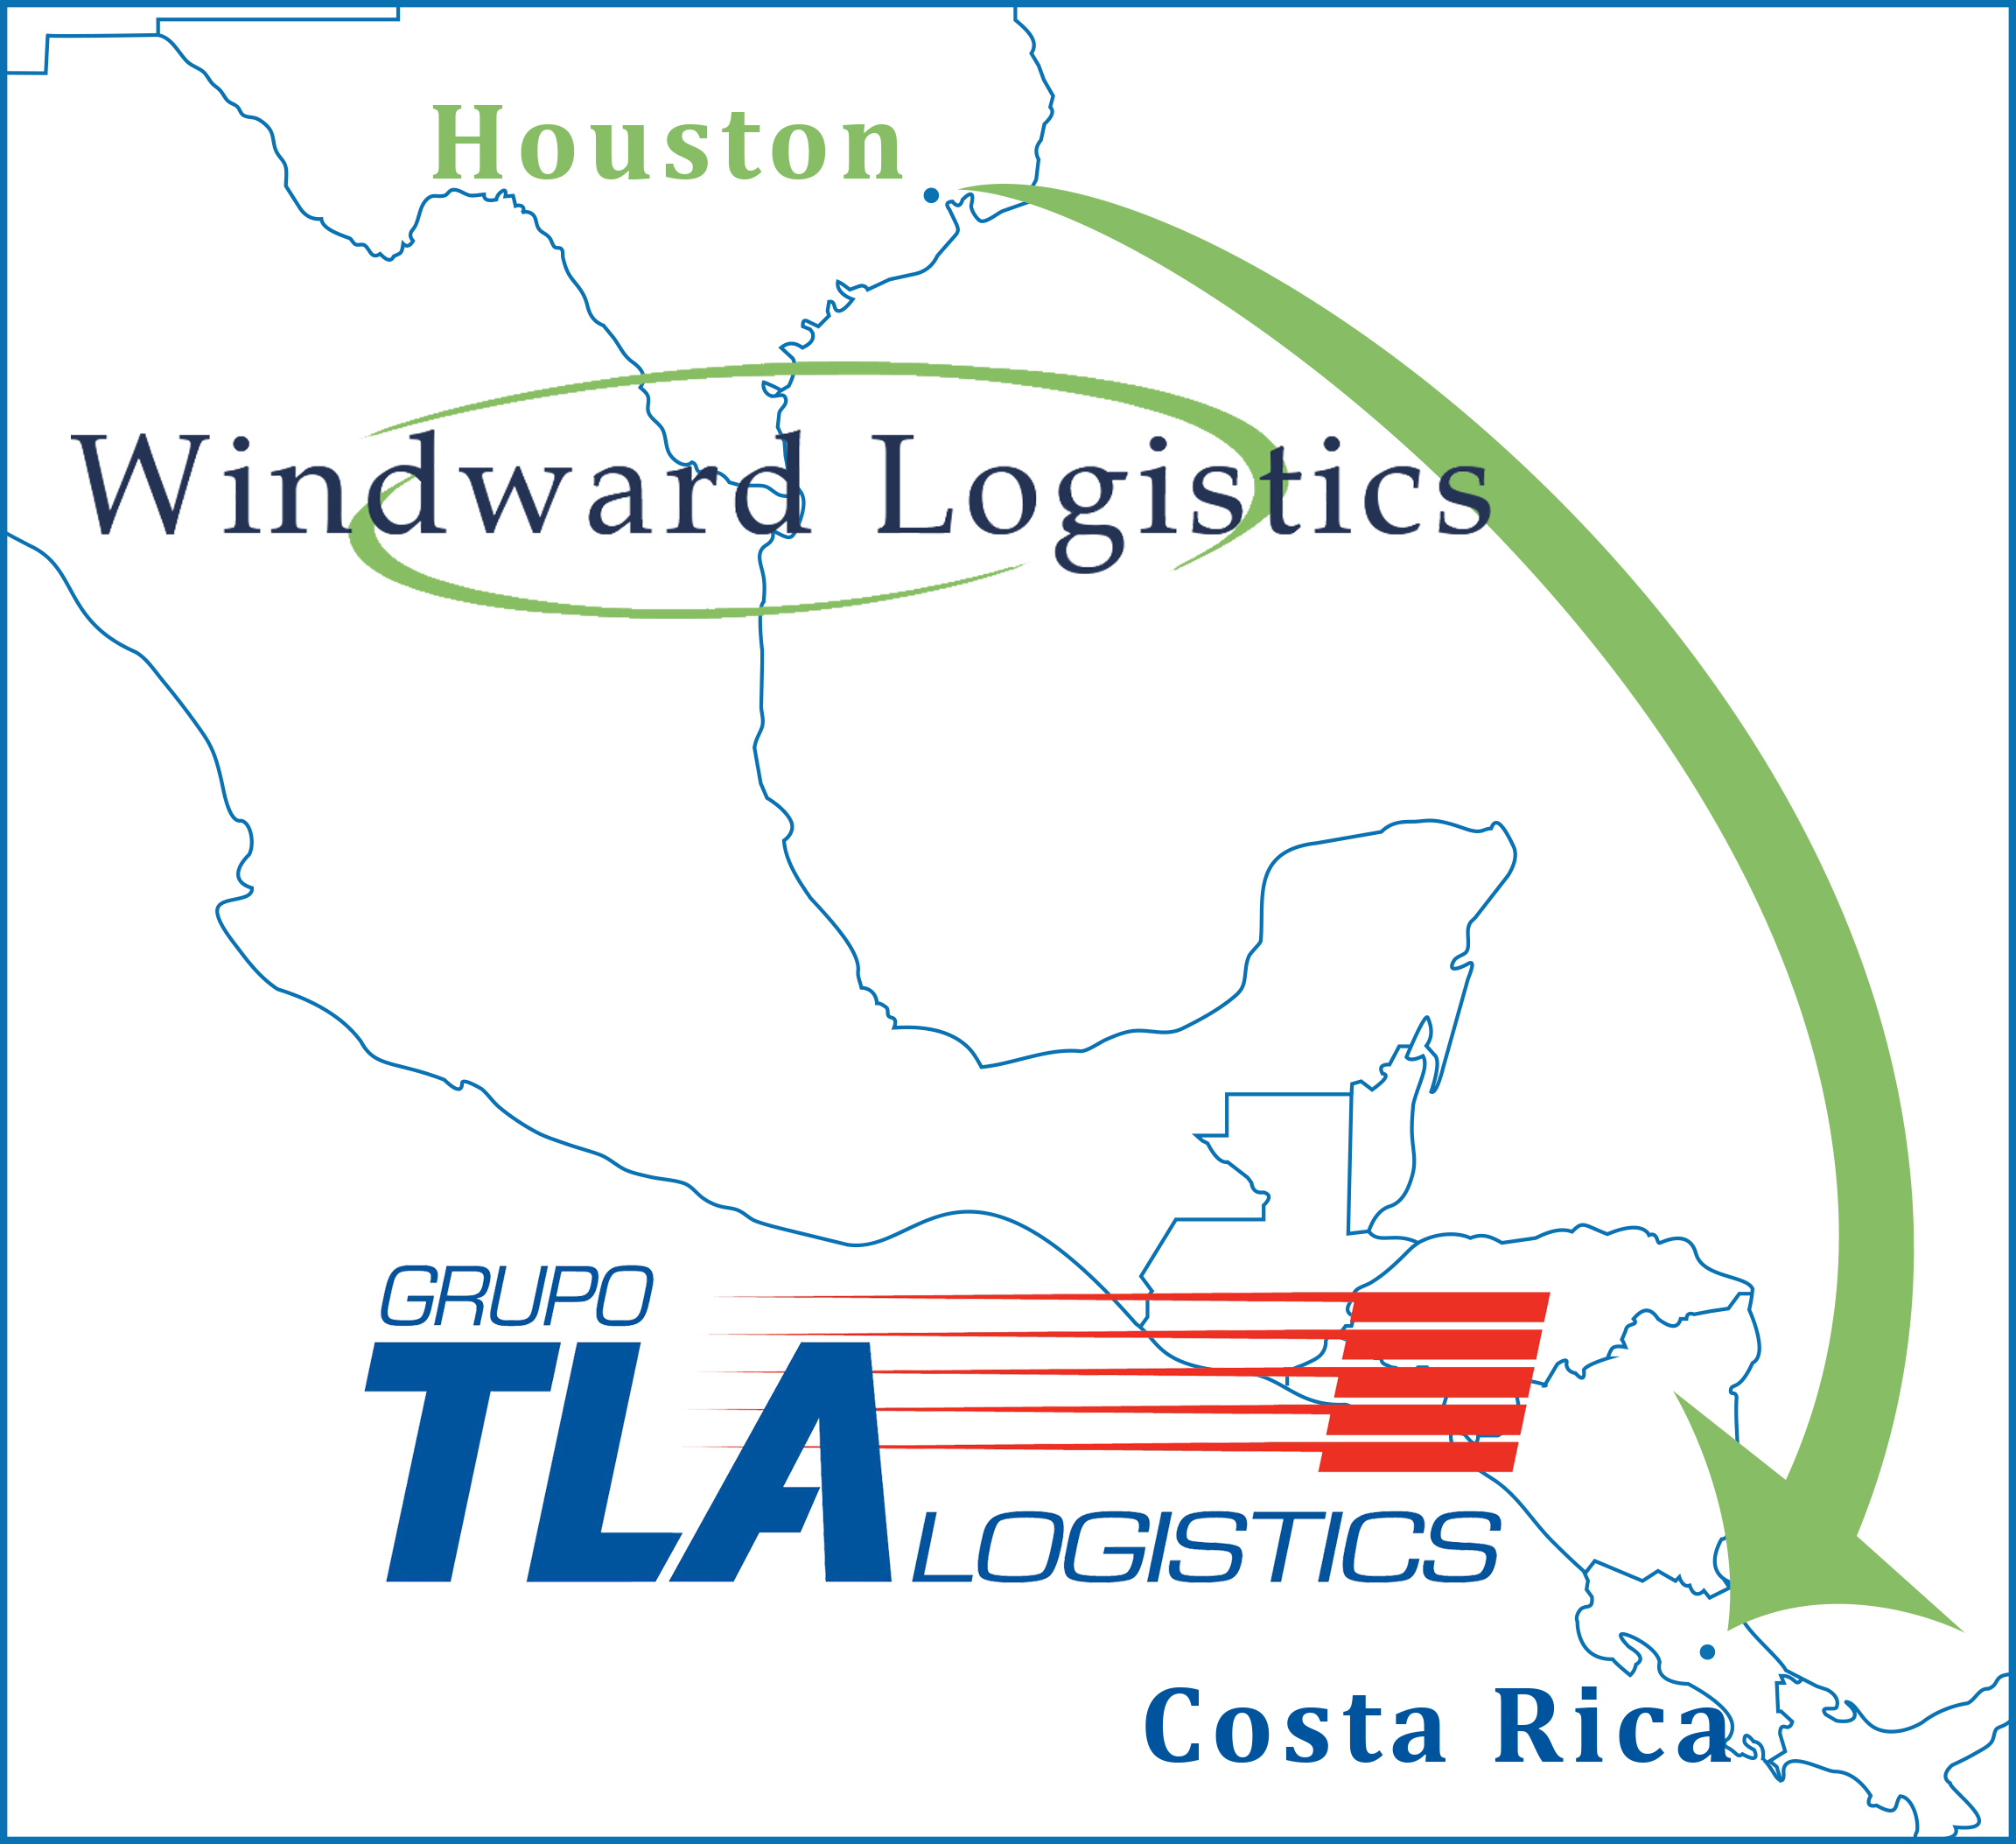 Windward Logisitcs and Grupo TLA